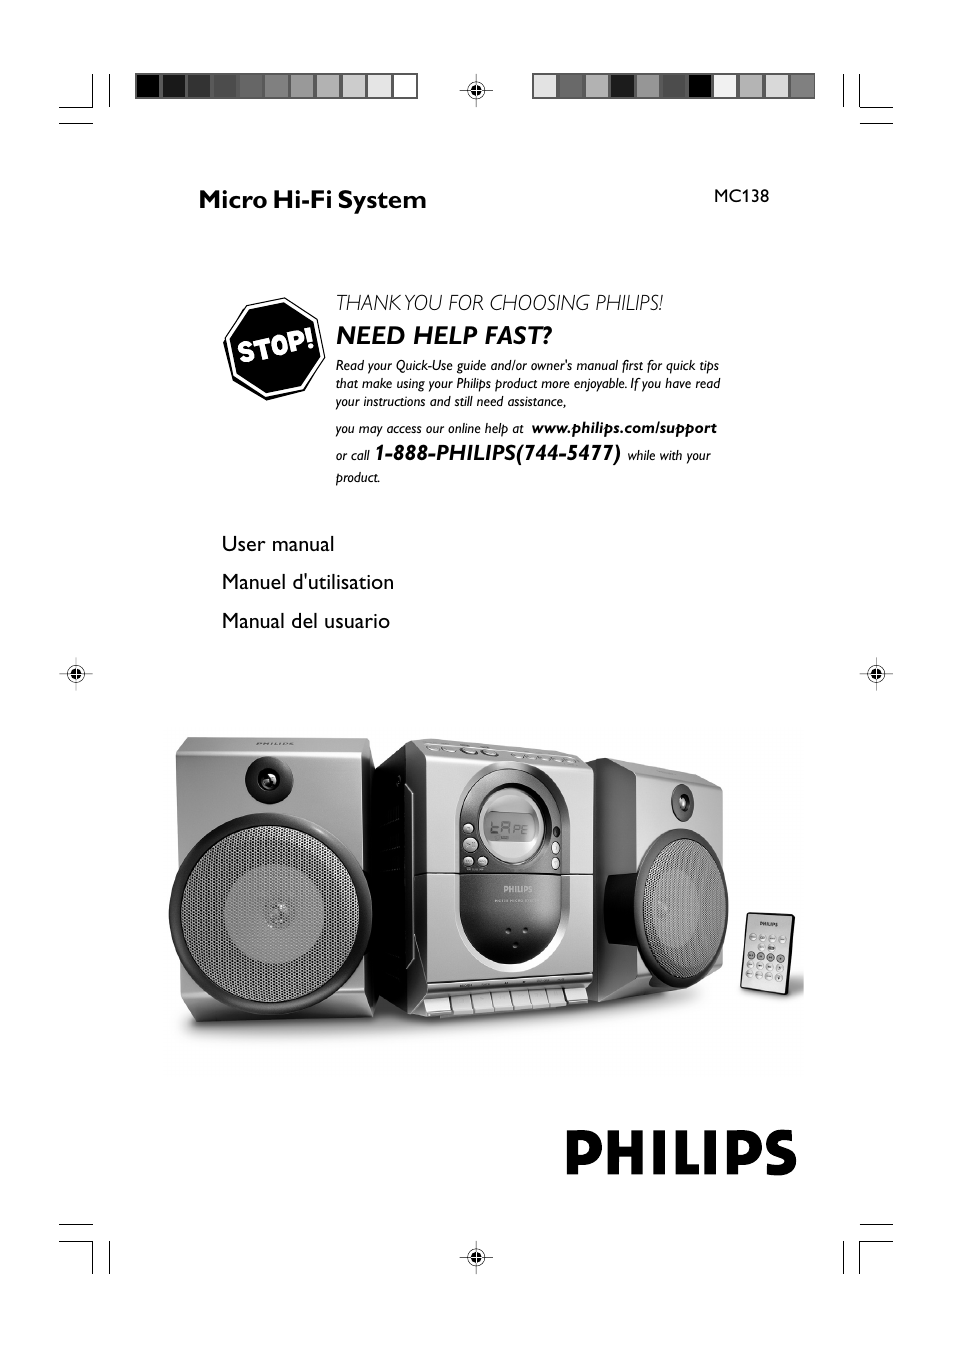 philips mc138 37 user manual 23 pages also for mc138 37b rh manualsdir com Philips User Guides Speaker Bt7900 Philips Flat TV Manual